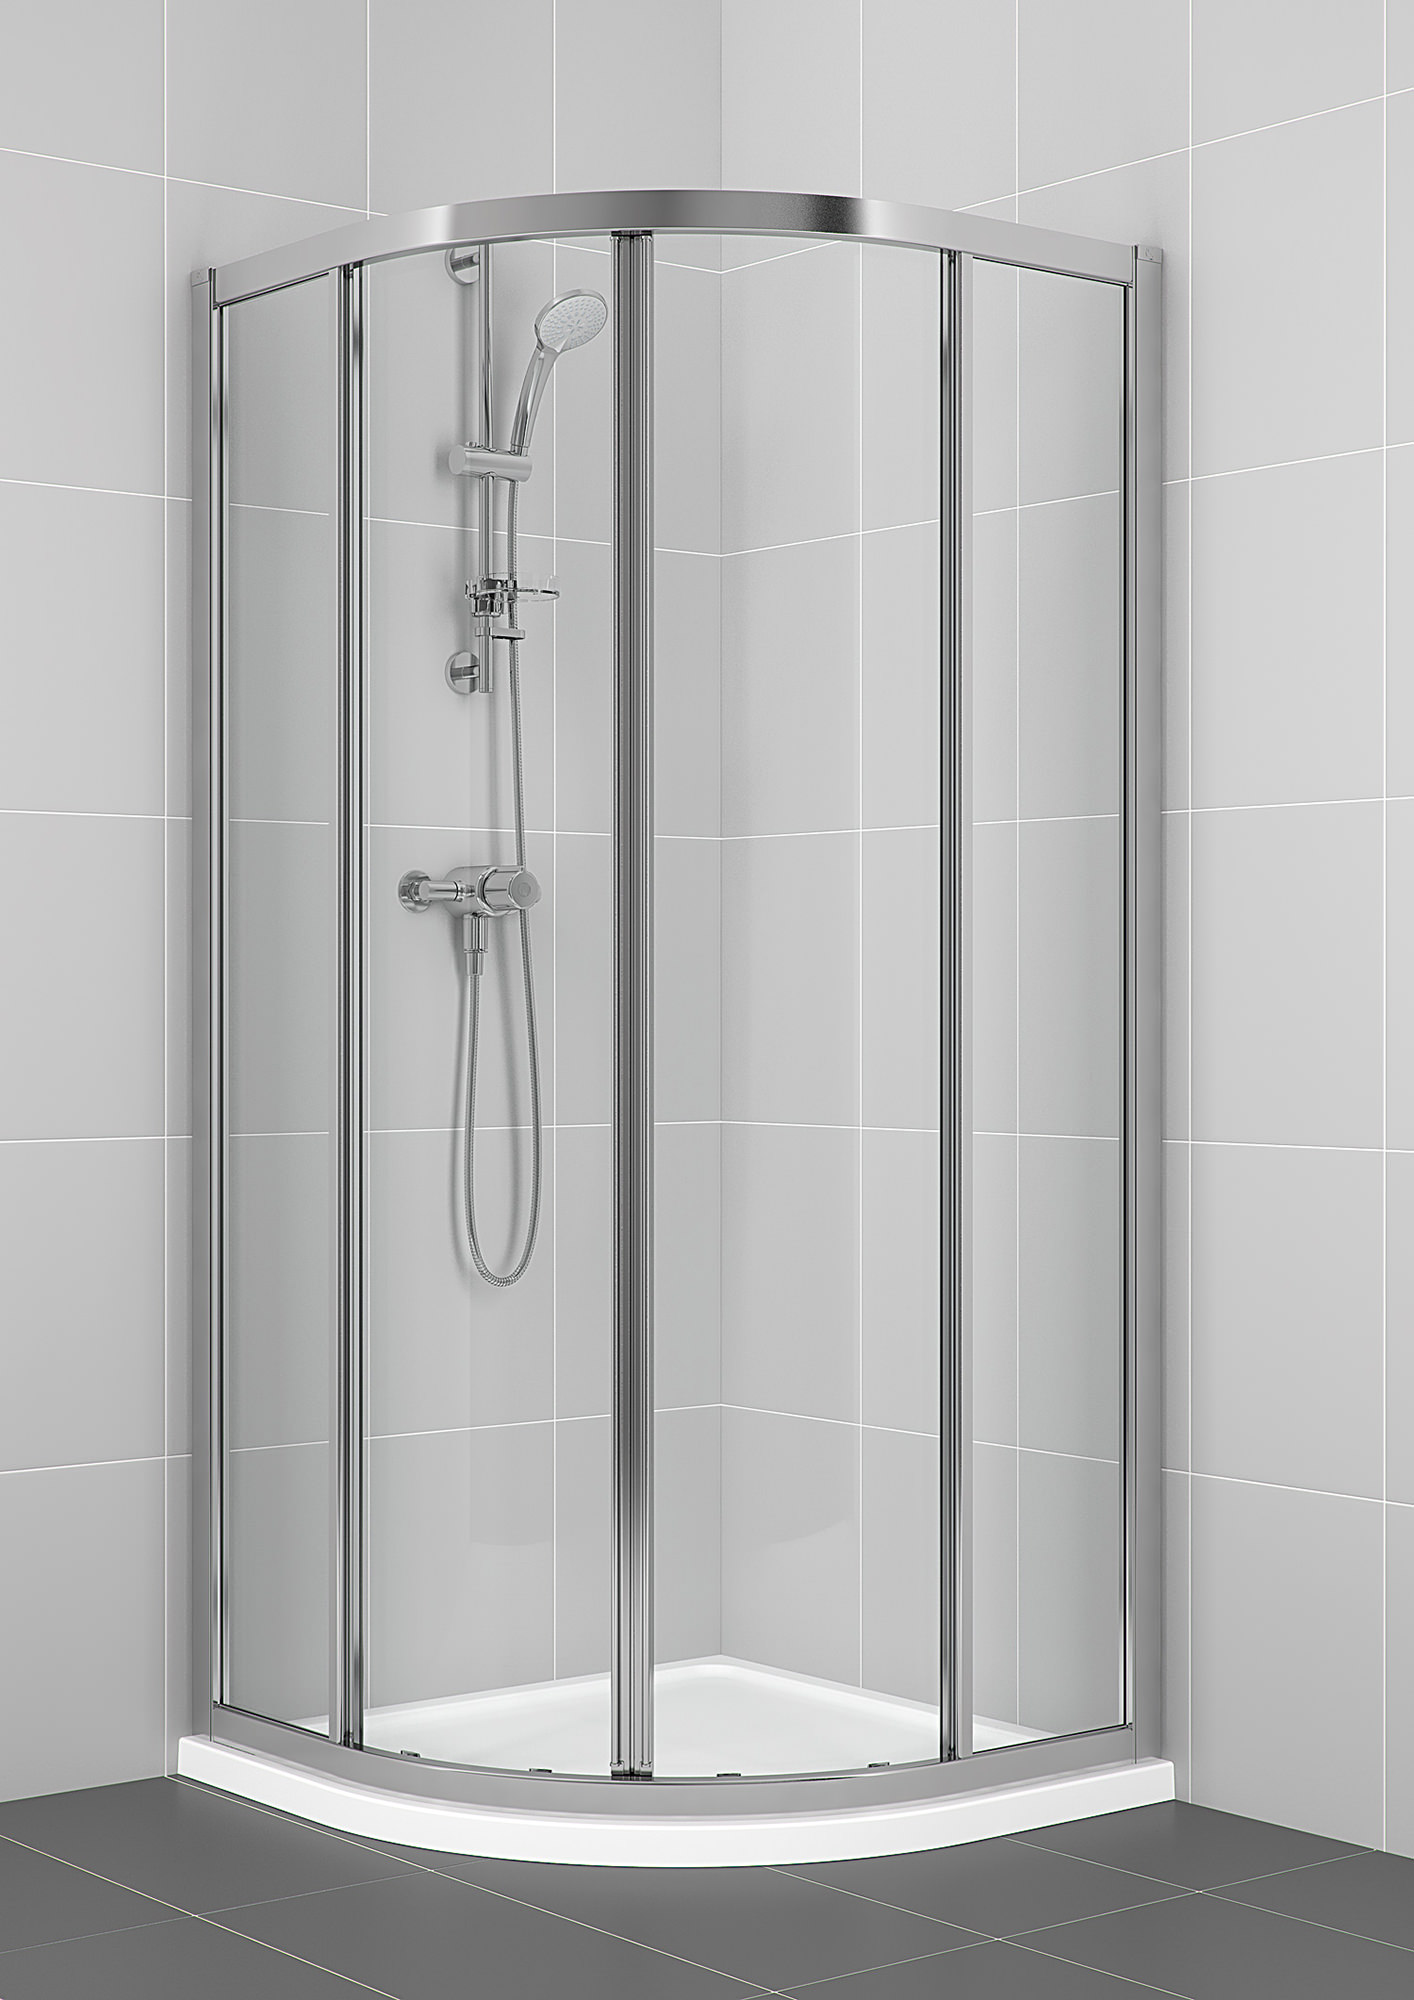 Ideal Standard Connect 800 X 800mm Quadrant Shower Enclosure